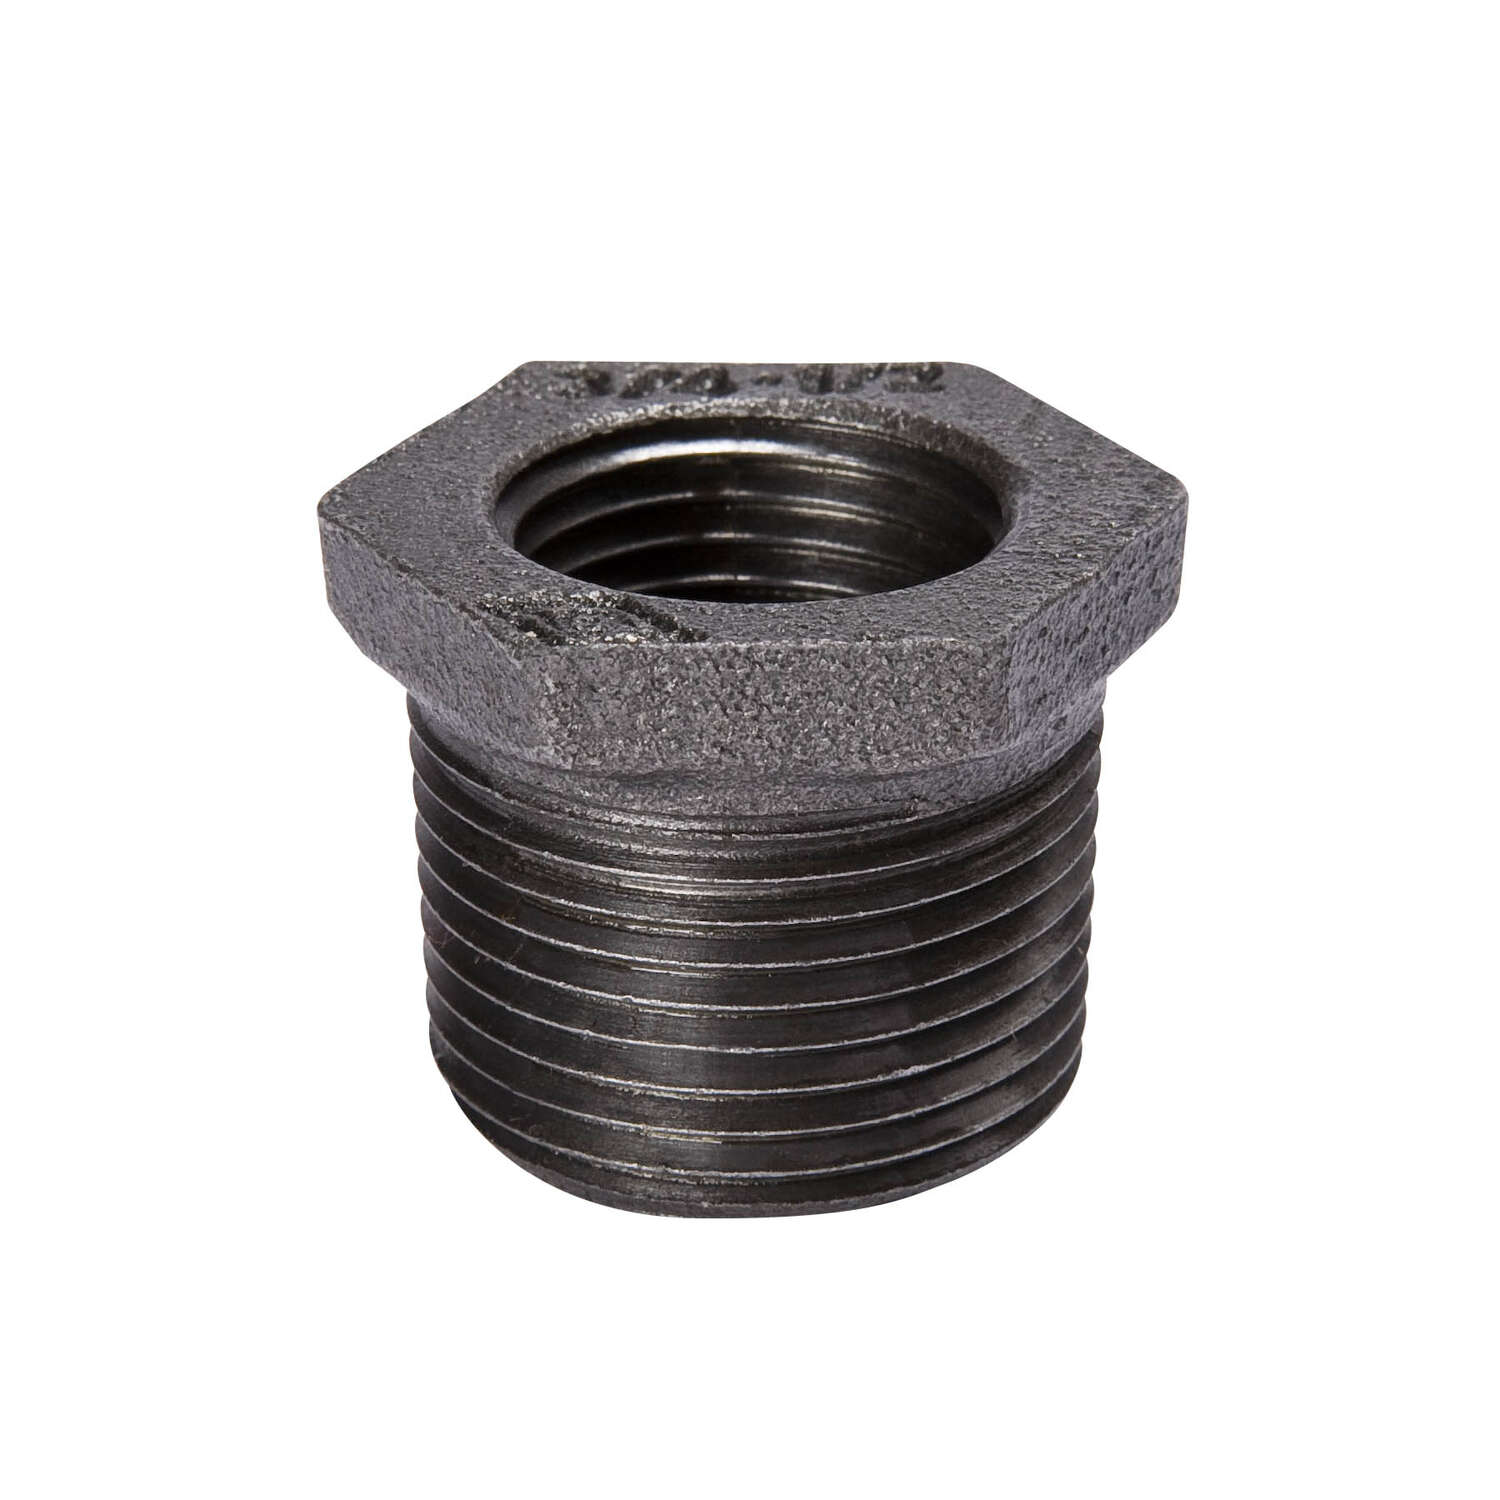 BK Products  Southland  3 in. FPT   x 1-1/2 in. Dia. FPT  Black  Malleable Iron  Hex Bushing